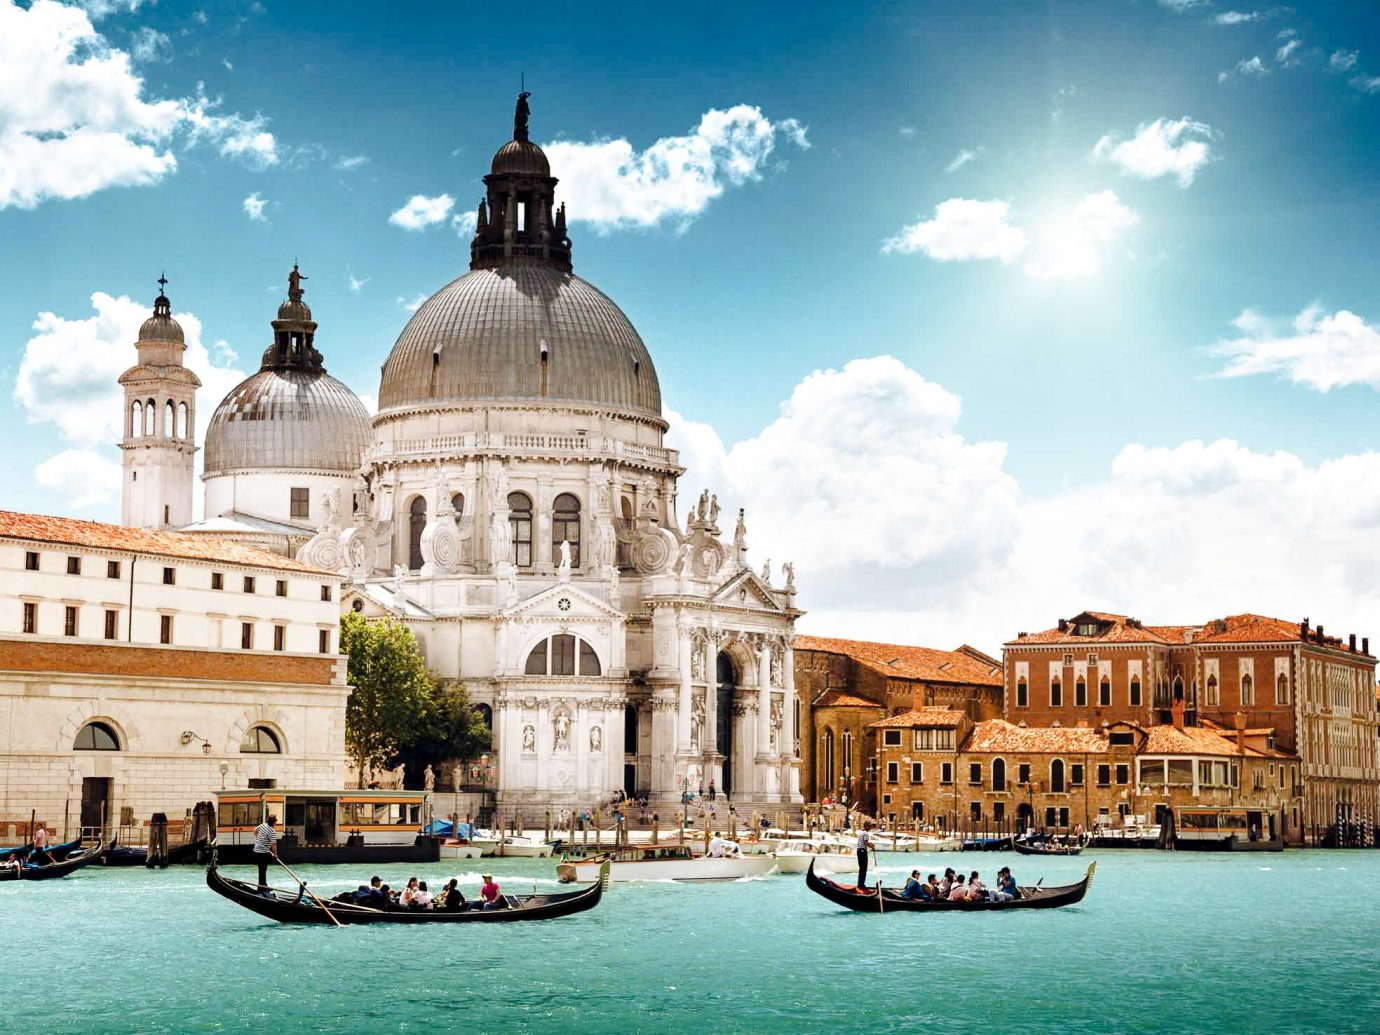 Cruise Travel Luxury Travel sky outdoor water Boat waterway landmark tourist attraction tourism City basilica gondola building facade historic site palace